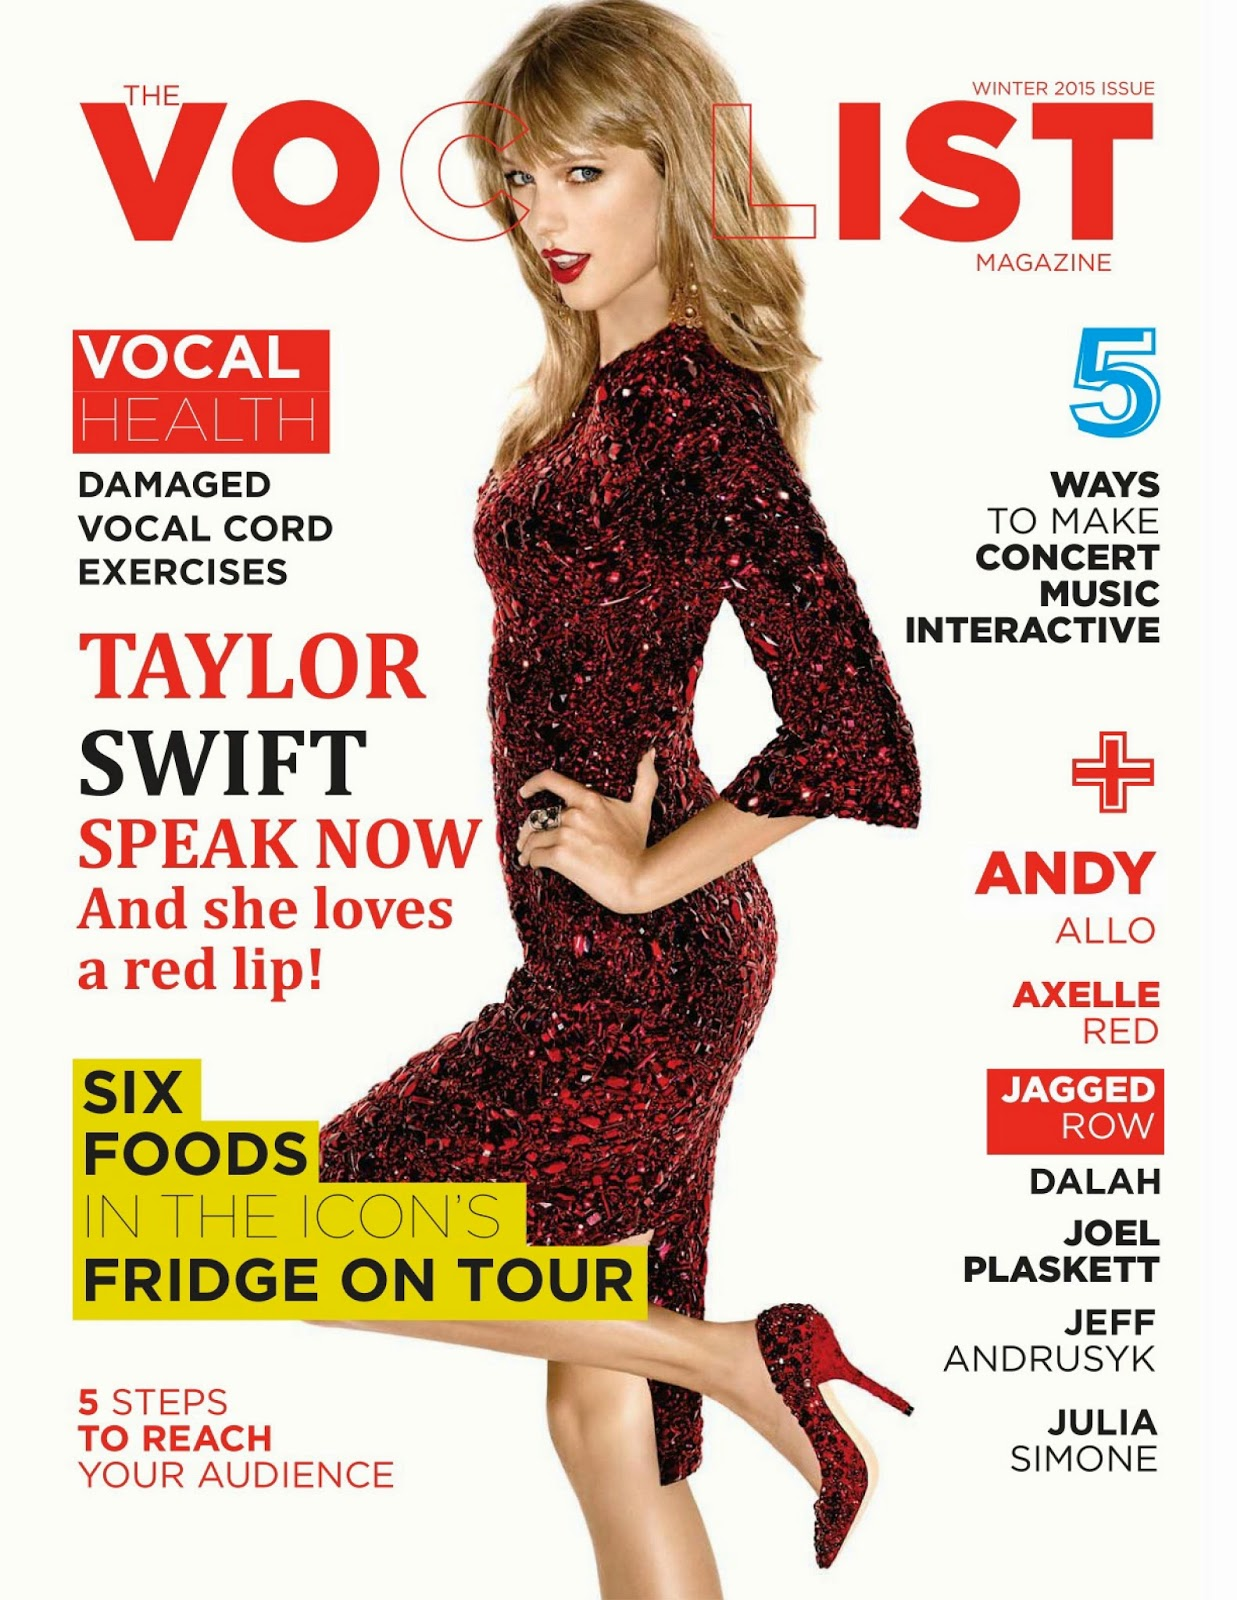 Singer-Songwriter, Actress, Fashion Model: Taylor Swift - The Vocalist Winter 2015 Issue